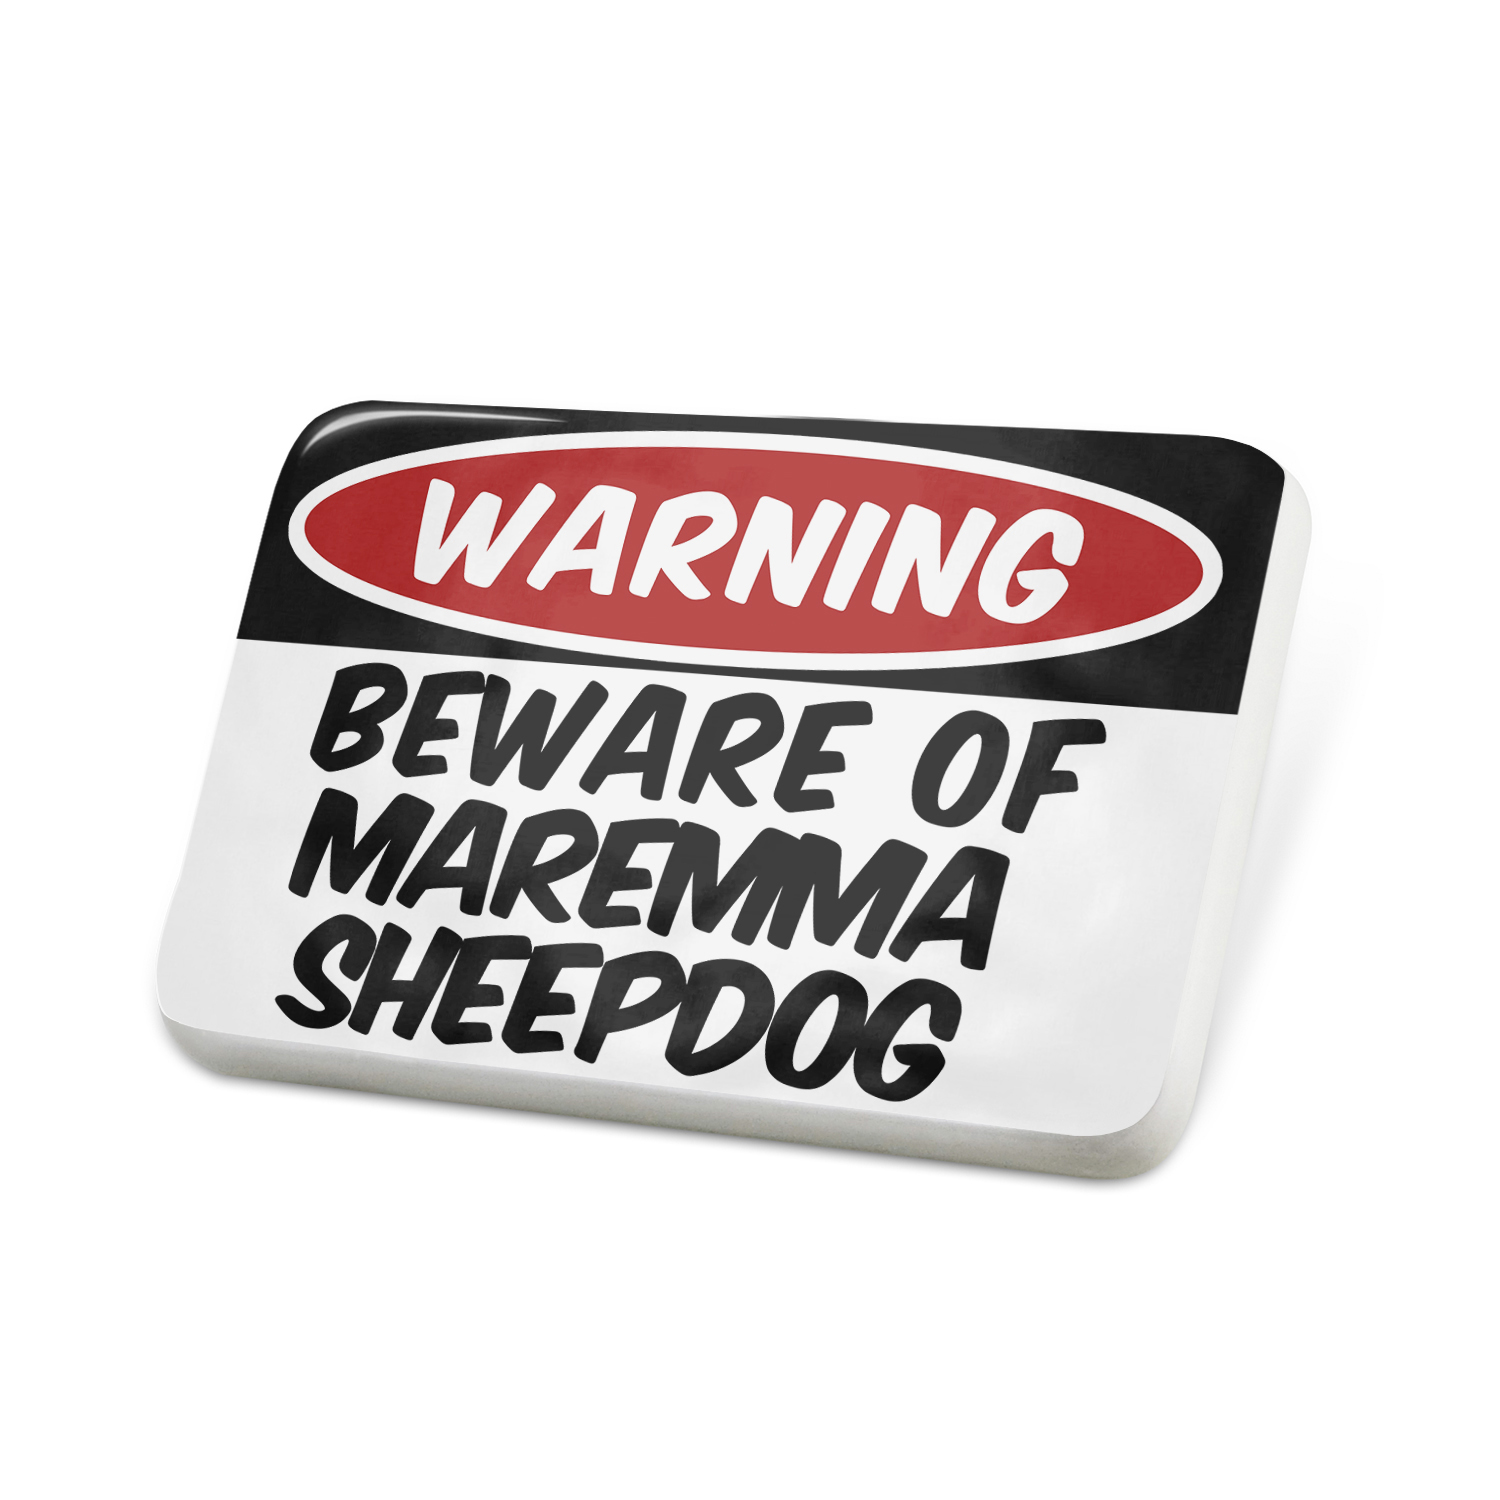 Porcelein Pin Beware of the Maremma SheepDog from Italy Lapel Badge – NEONBLOND